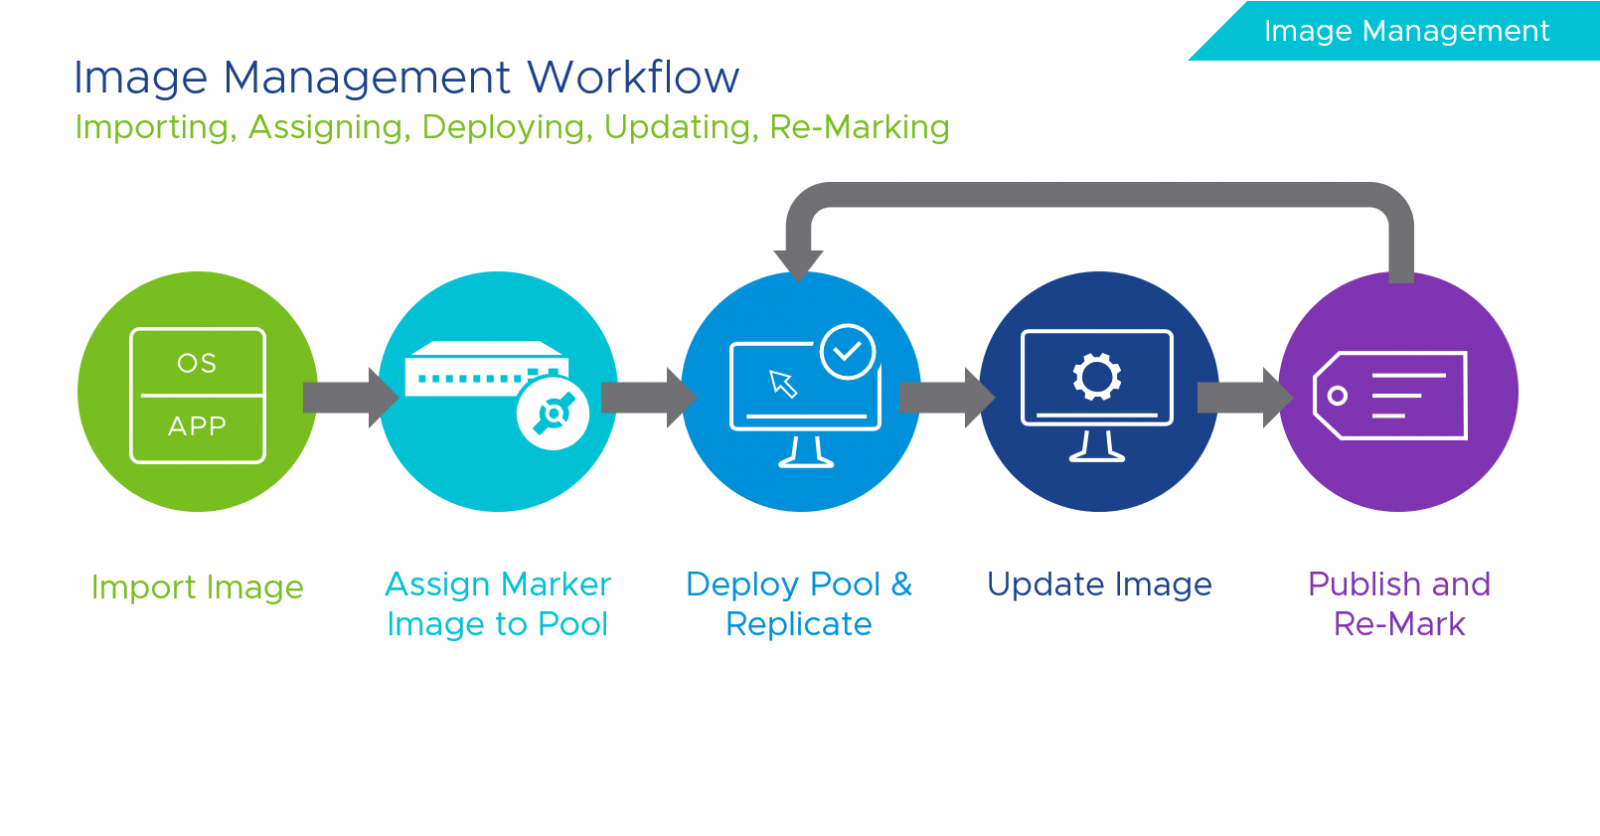 Image Management Workflow. Importing, Assigning, Deploying, Updating, Re-Marking